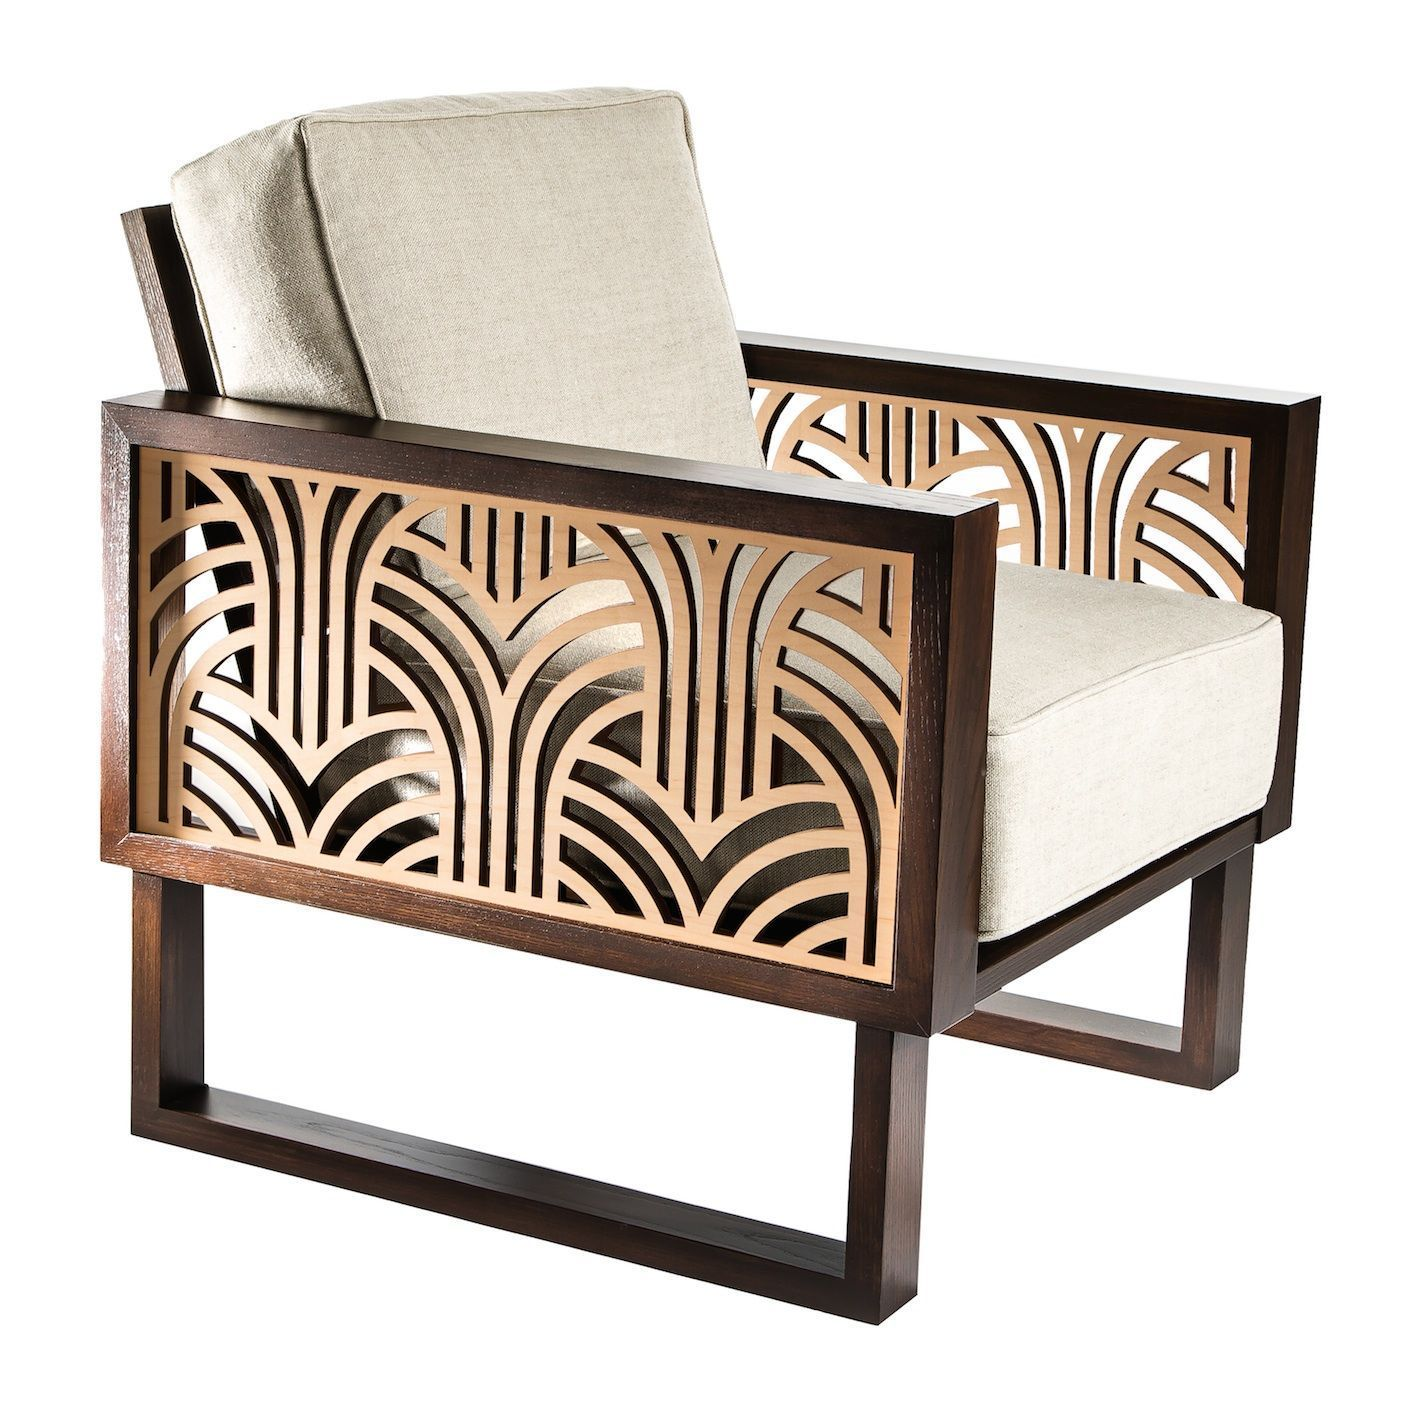 Pleasant A Twist Modern Tribute To The Sleek Elegance Of The Art Deco Bralicious Painted Fabric Chair Ideas Braliciousco